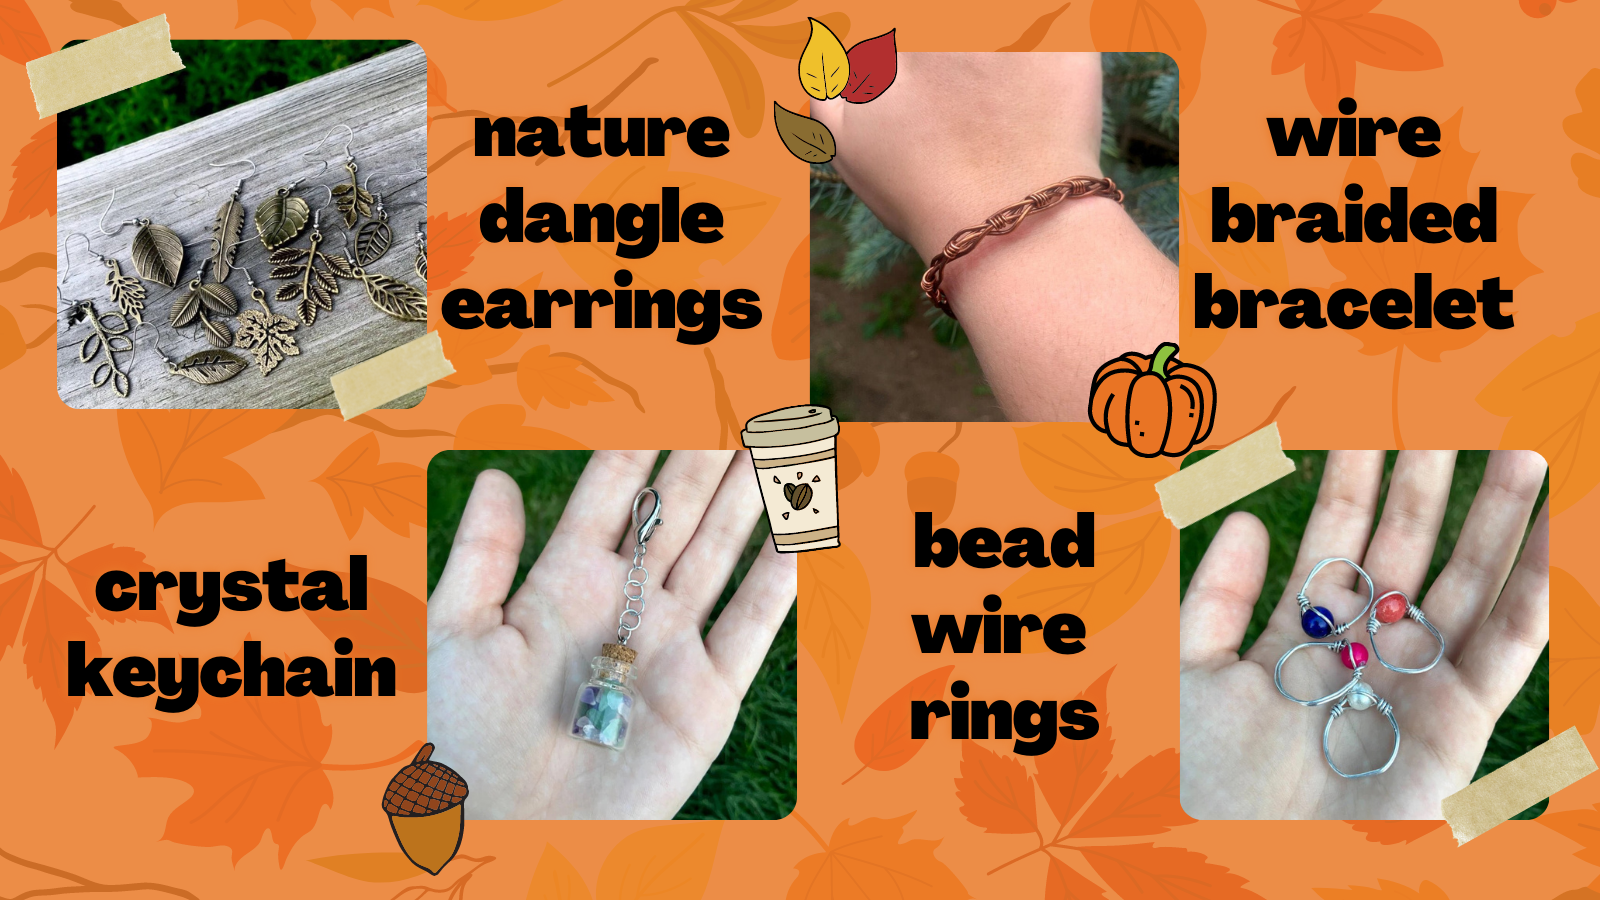 a collage of four pictures of jewelry and accessories. crystal keychain, nature dangle earrings, bead wire rings and wire braided bracelet